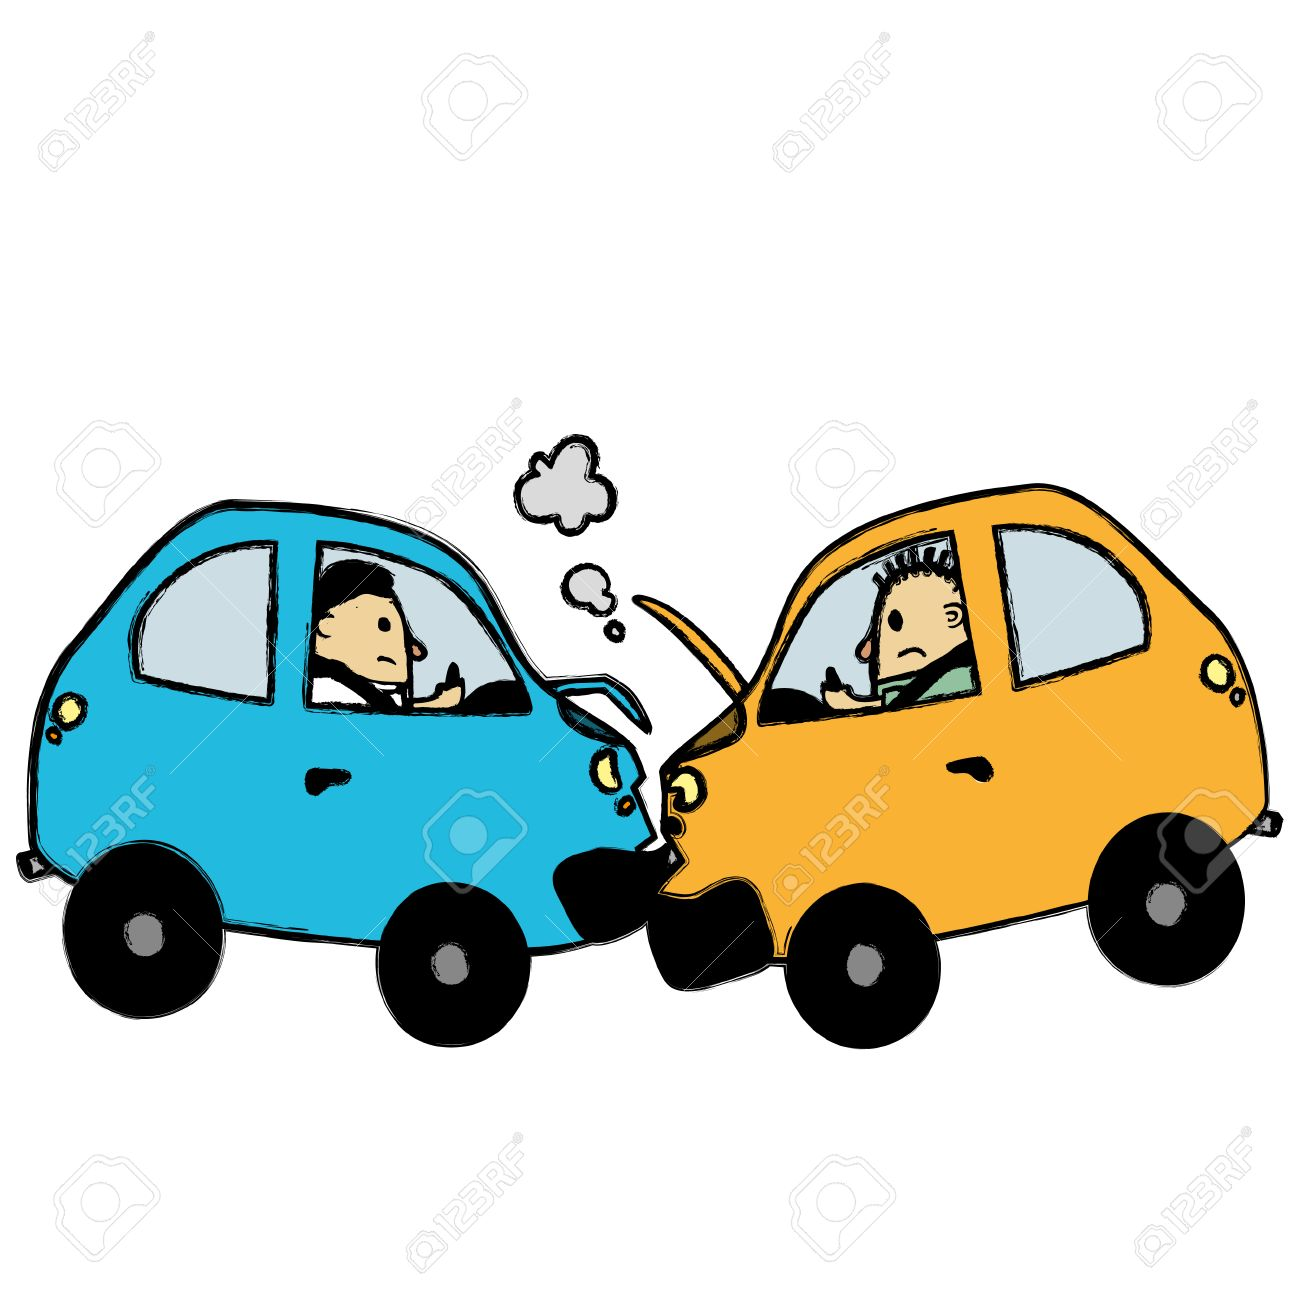 Cartoon Car Accident Pictures Free Download Clip Art.